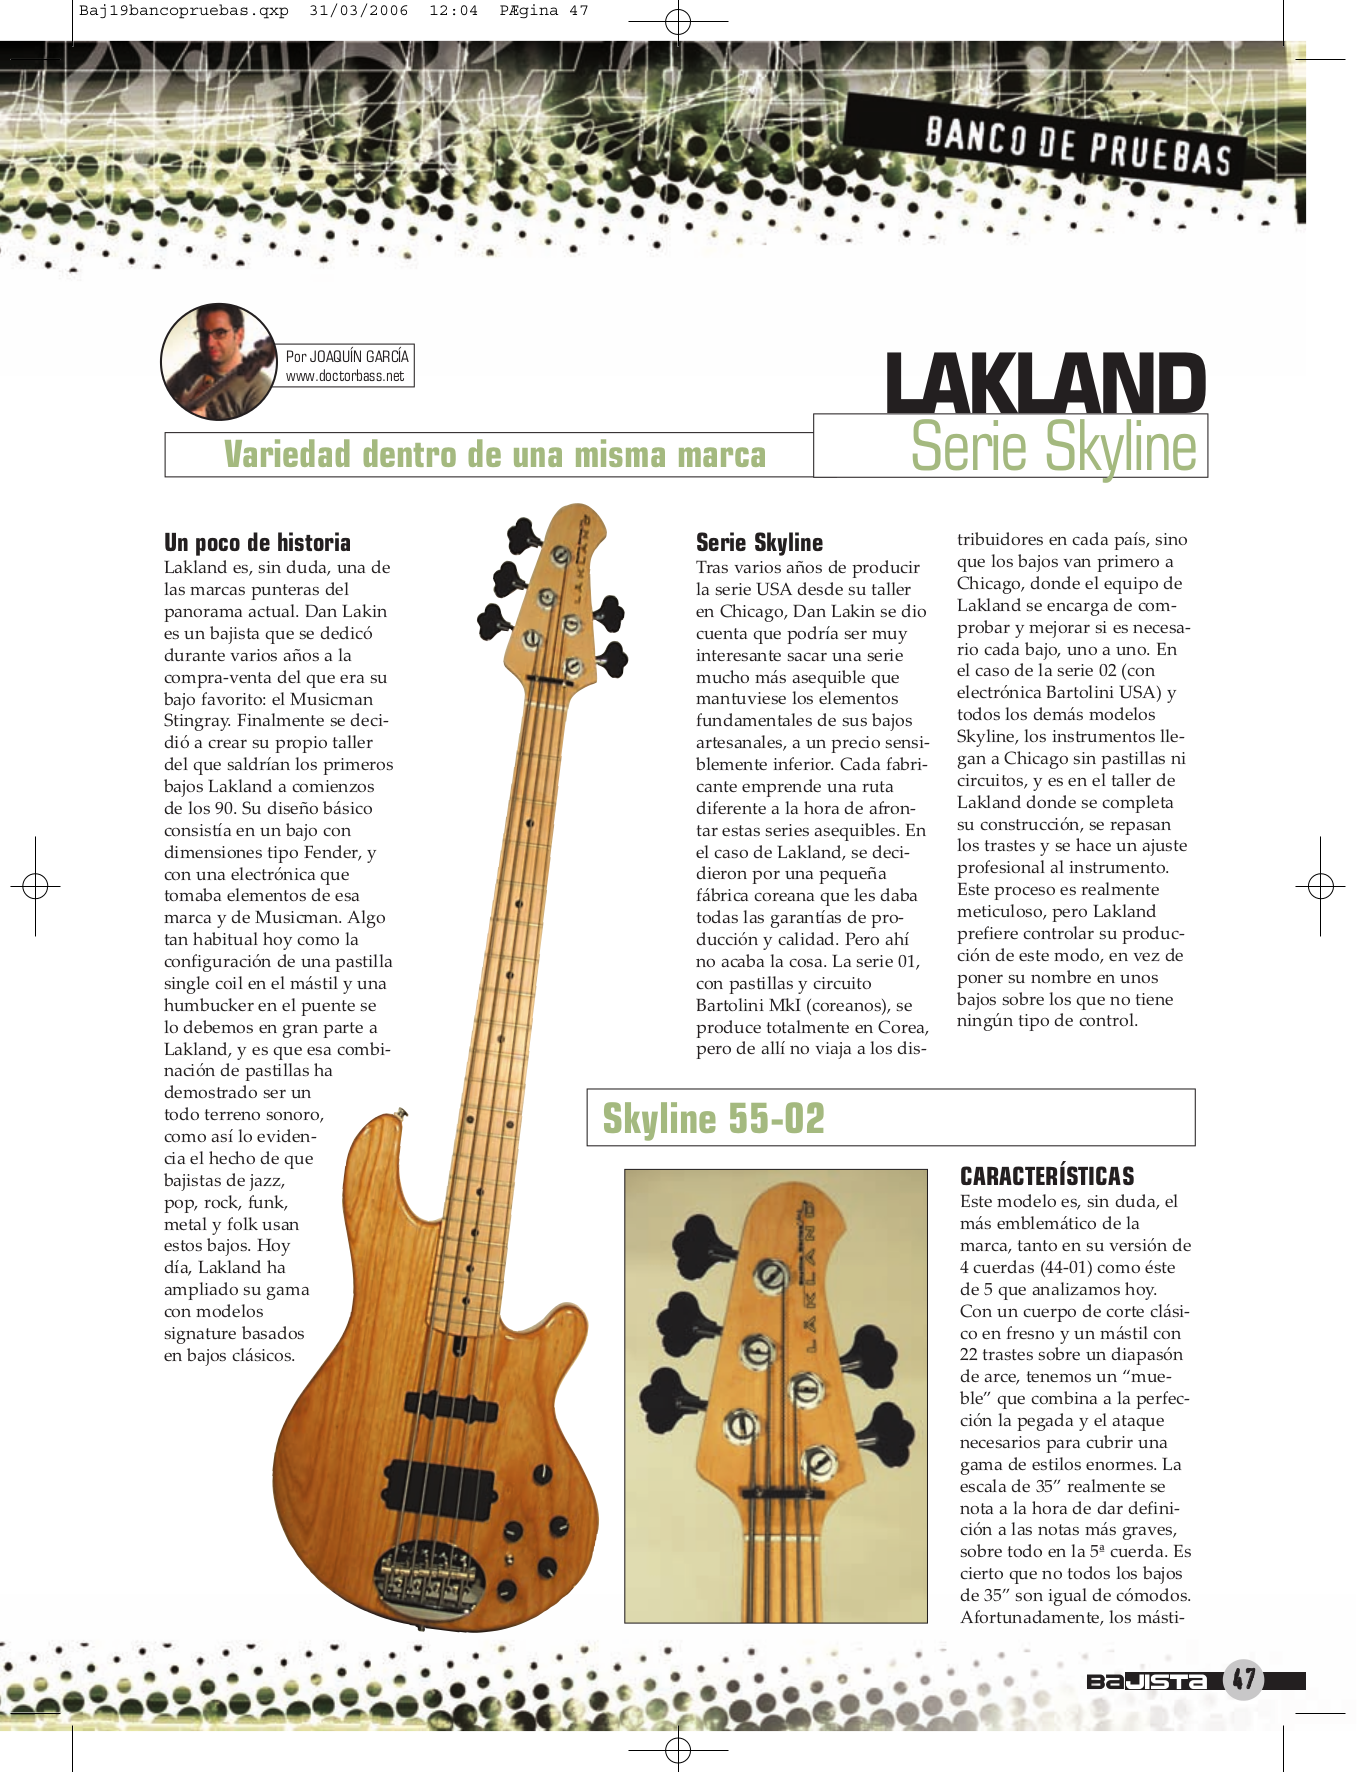 download free pdf for lakland skyline 55 01 guitar manual rh umlib com Fender Precision Bass Wiring Schematic Ibanez Soundgear Bass Wiring Diagram